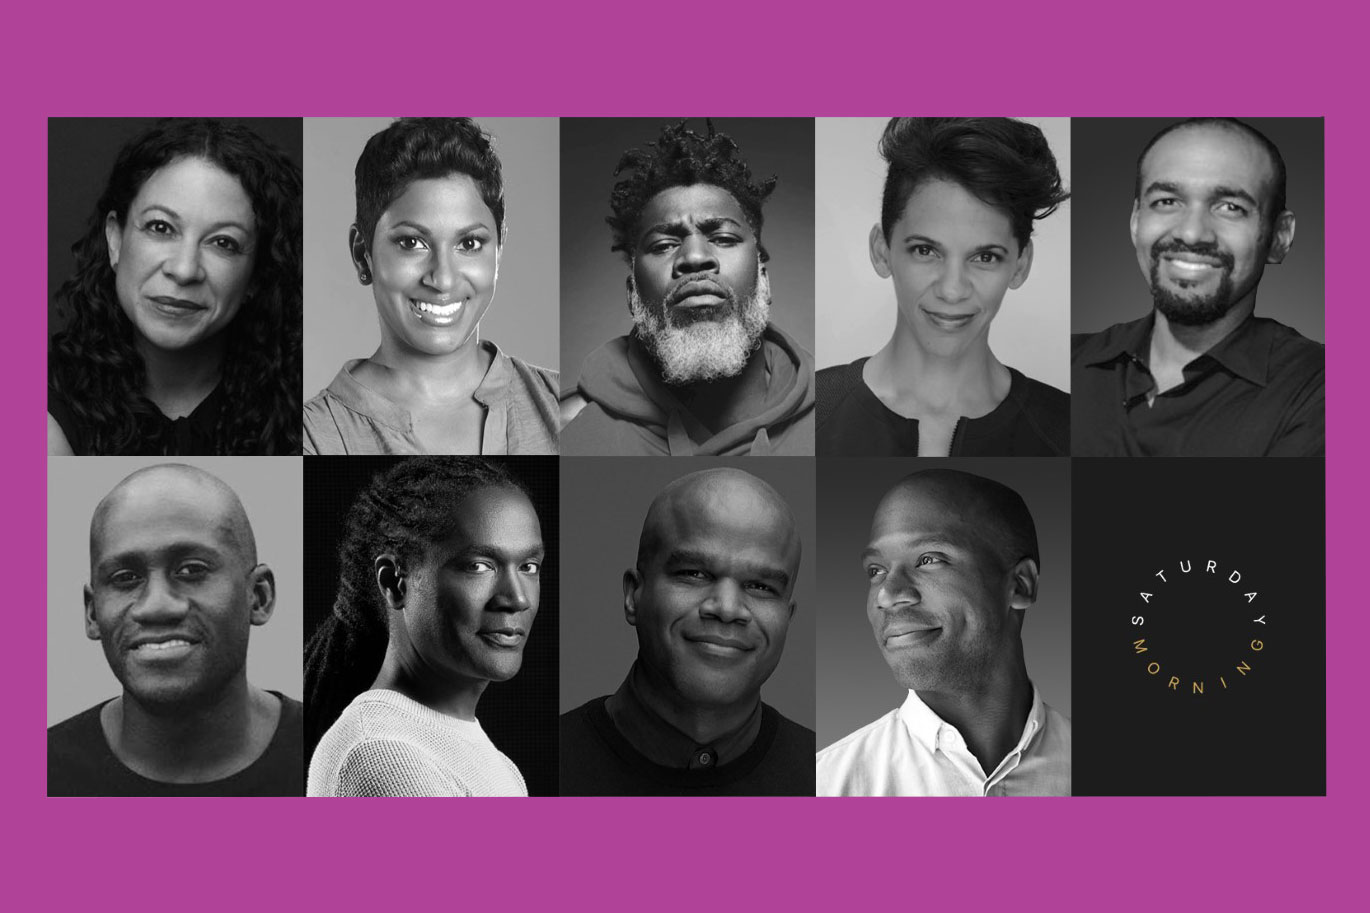 Creative group collective Saturday Morning adds board of directors members new Keith Cartwright Geoff Edwards Jayanta Jenkins Kwame Taylor-Hayford David Banner Marta Cunningham Gary Grant Amber Guild Talitha Watkins